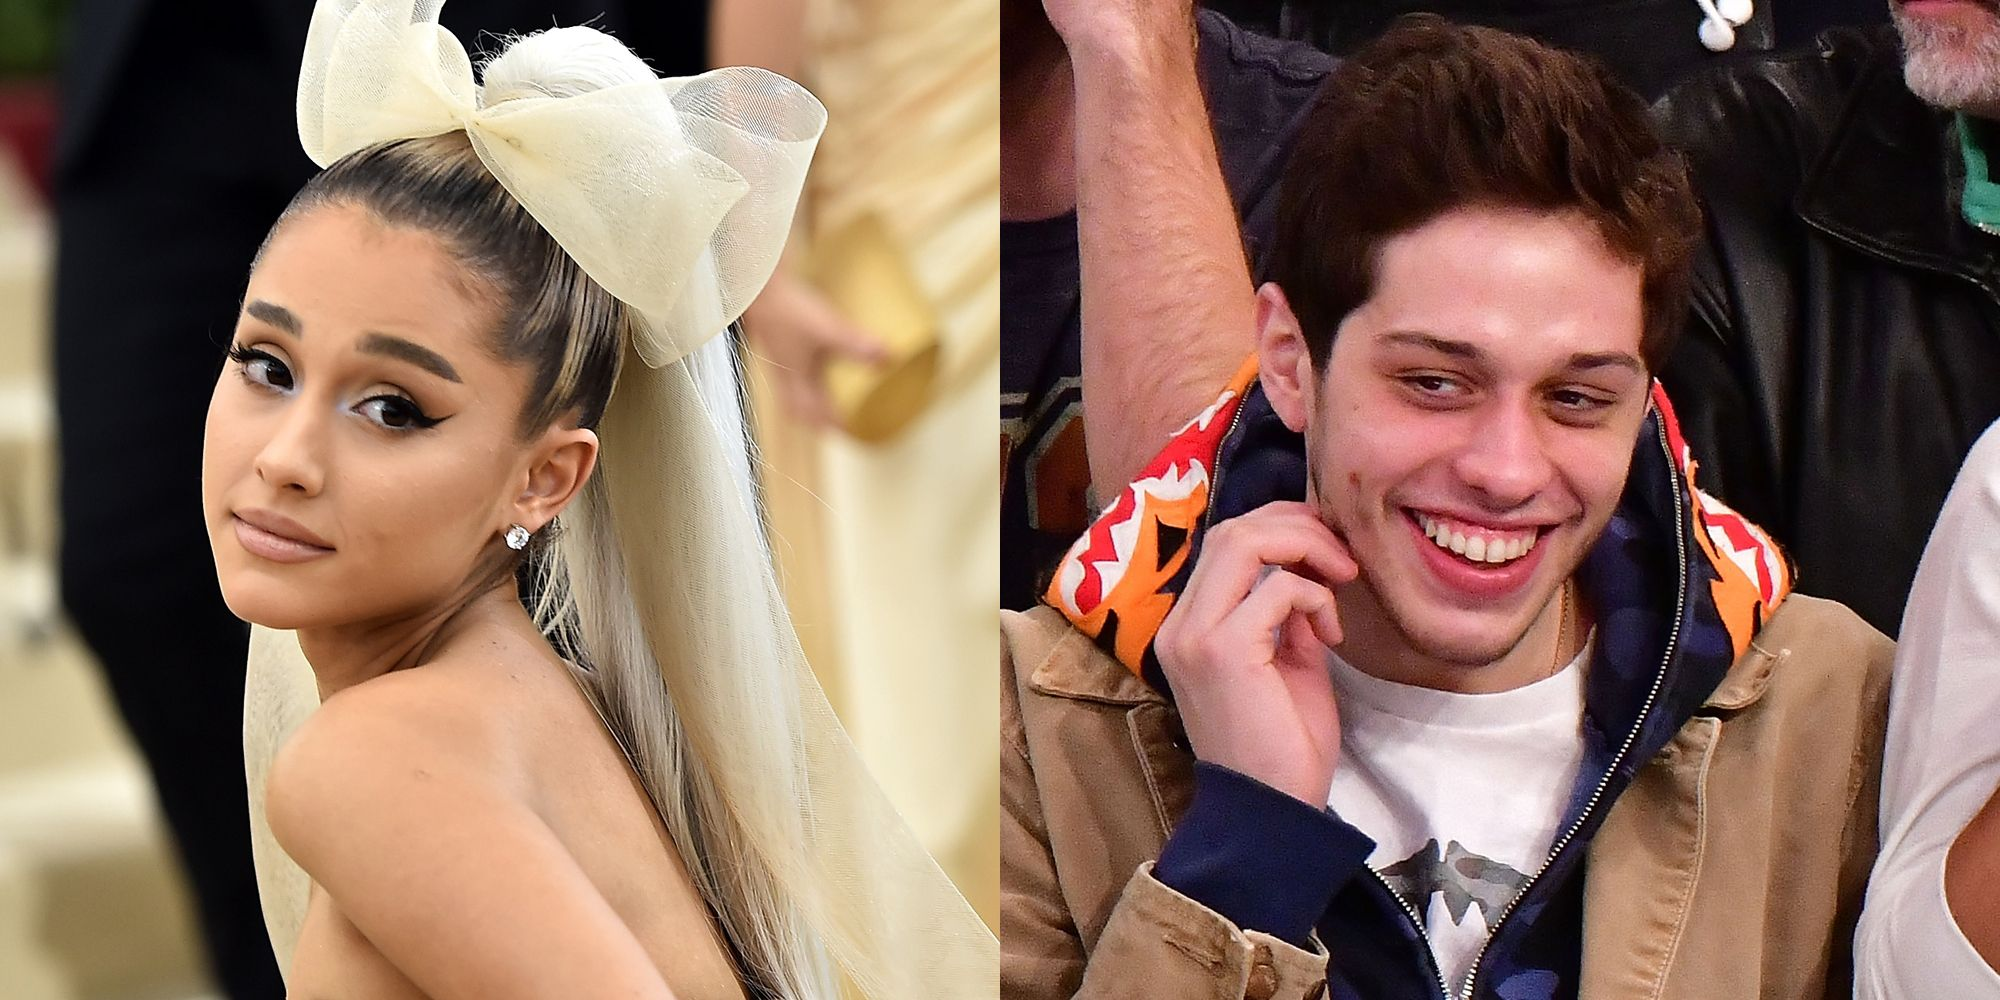 Is ariana grande dating someone new